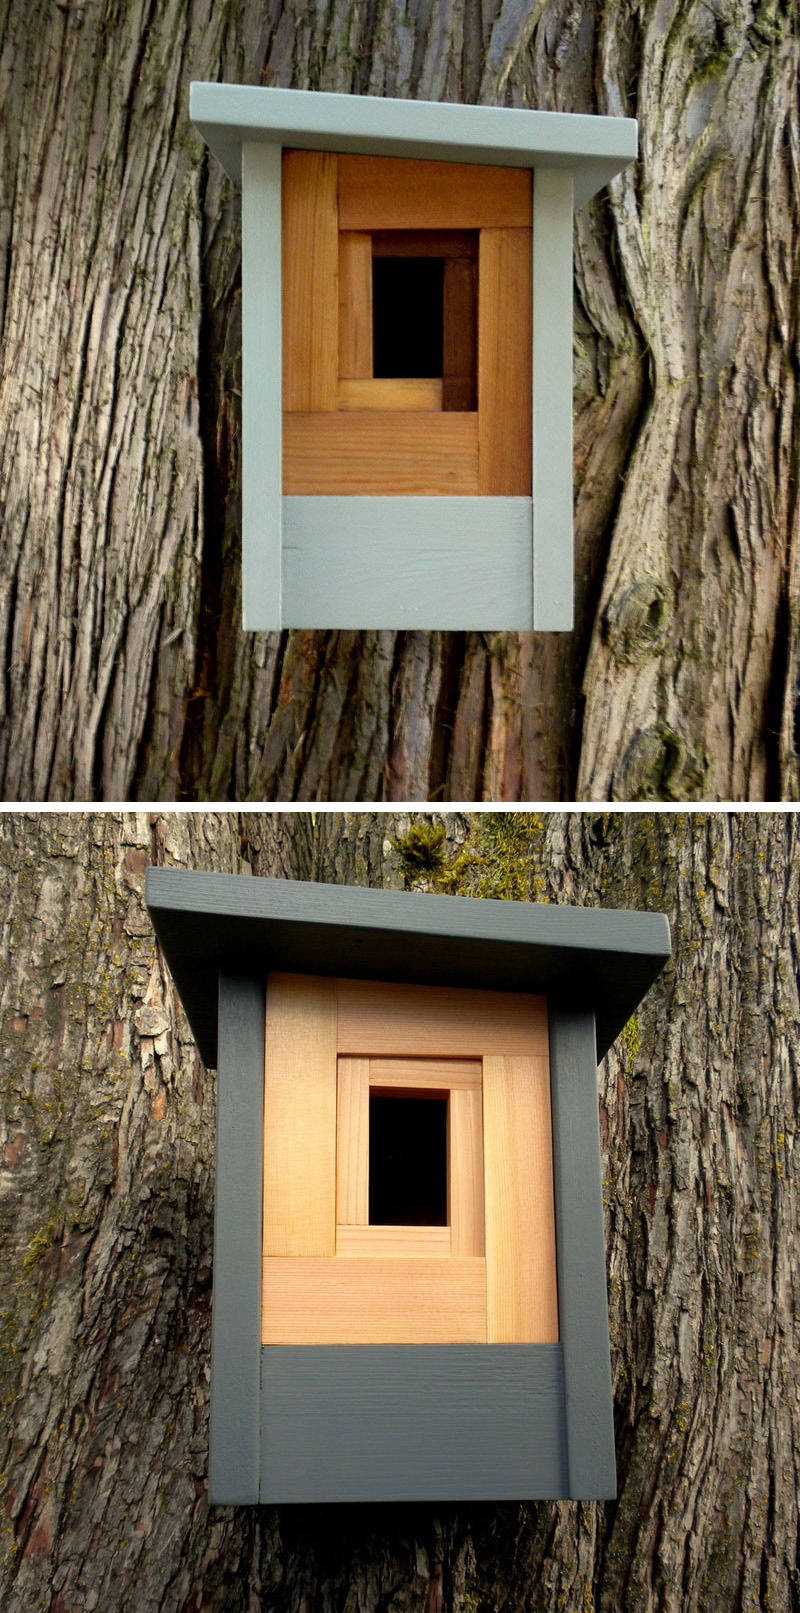 These light blue and grey wood modern birdhouses were inspired by craftsman architecture and a shutter lens.